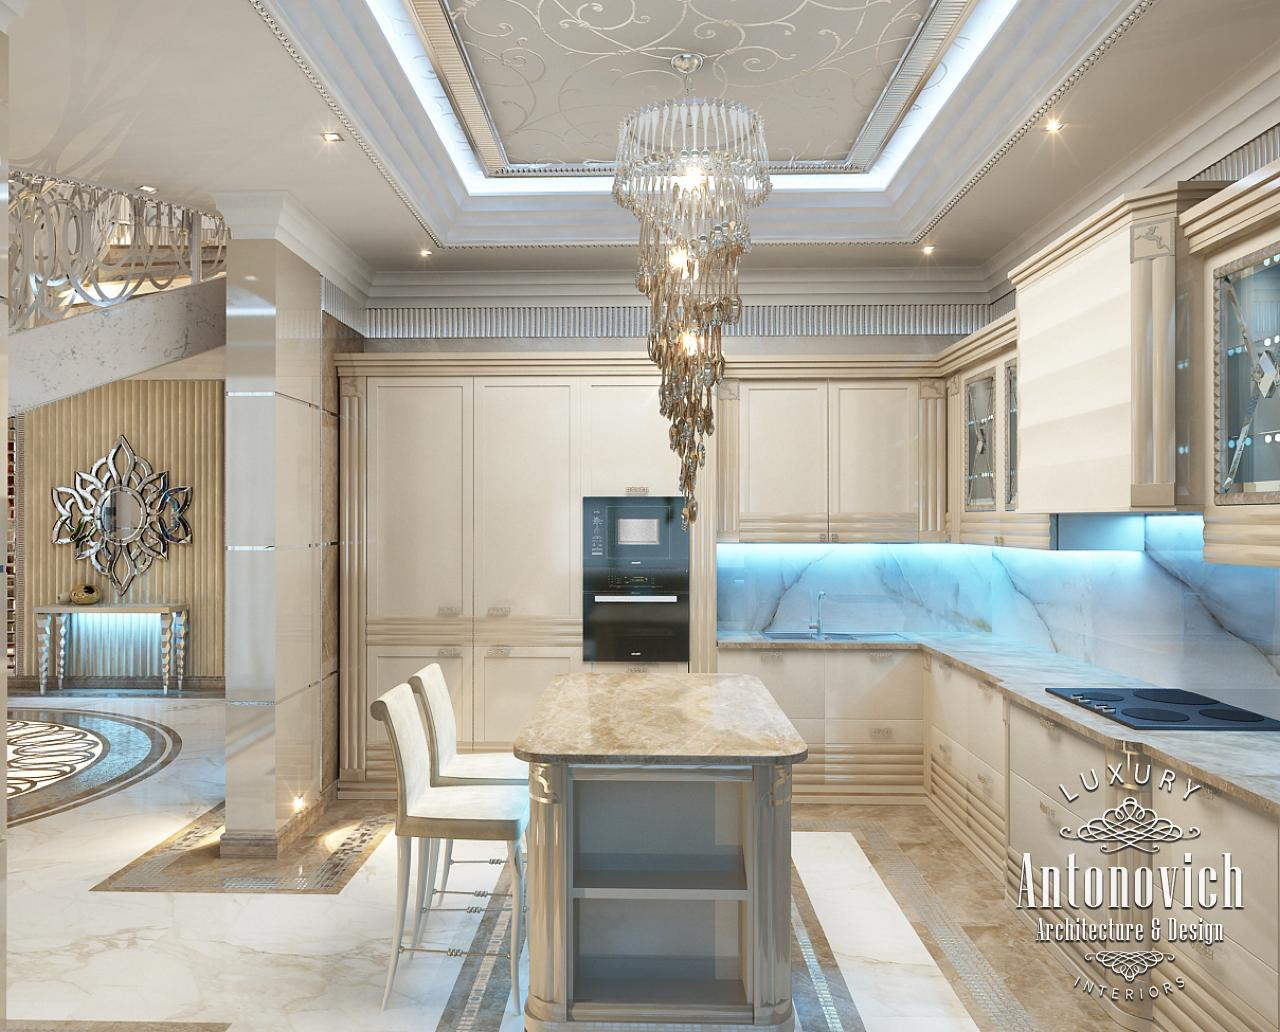 Luxury antonovich design uae luxury interior design dubai for Interior decoration pics